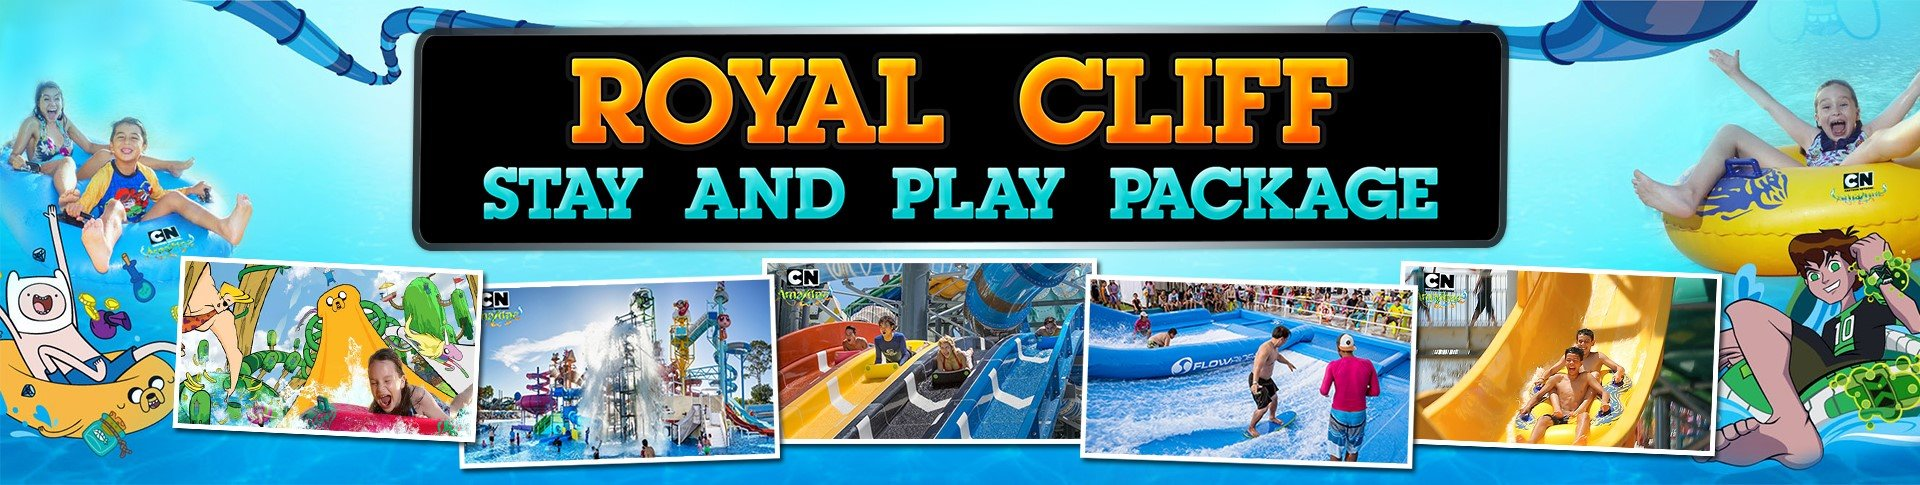 Keep Cool this Summer with Royal Cliff's Stay & Play Package